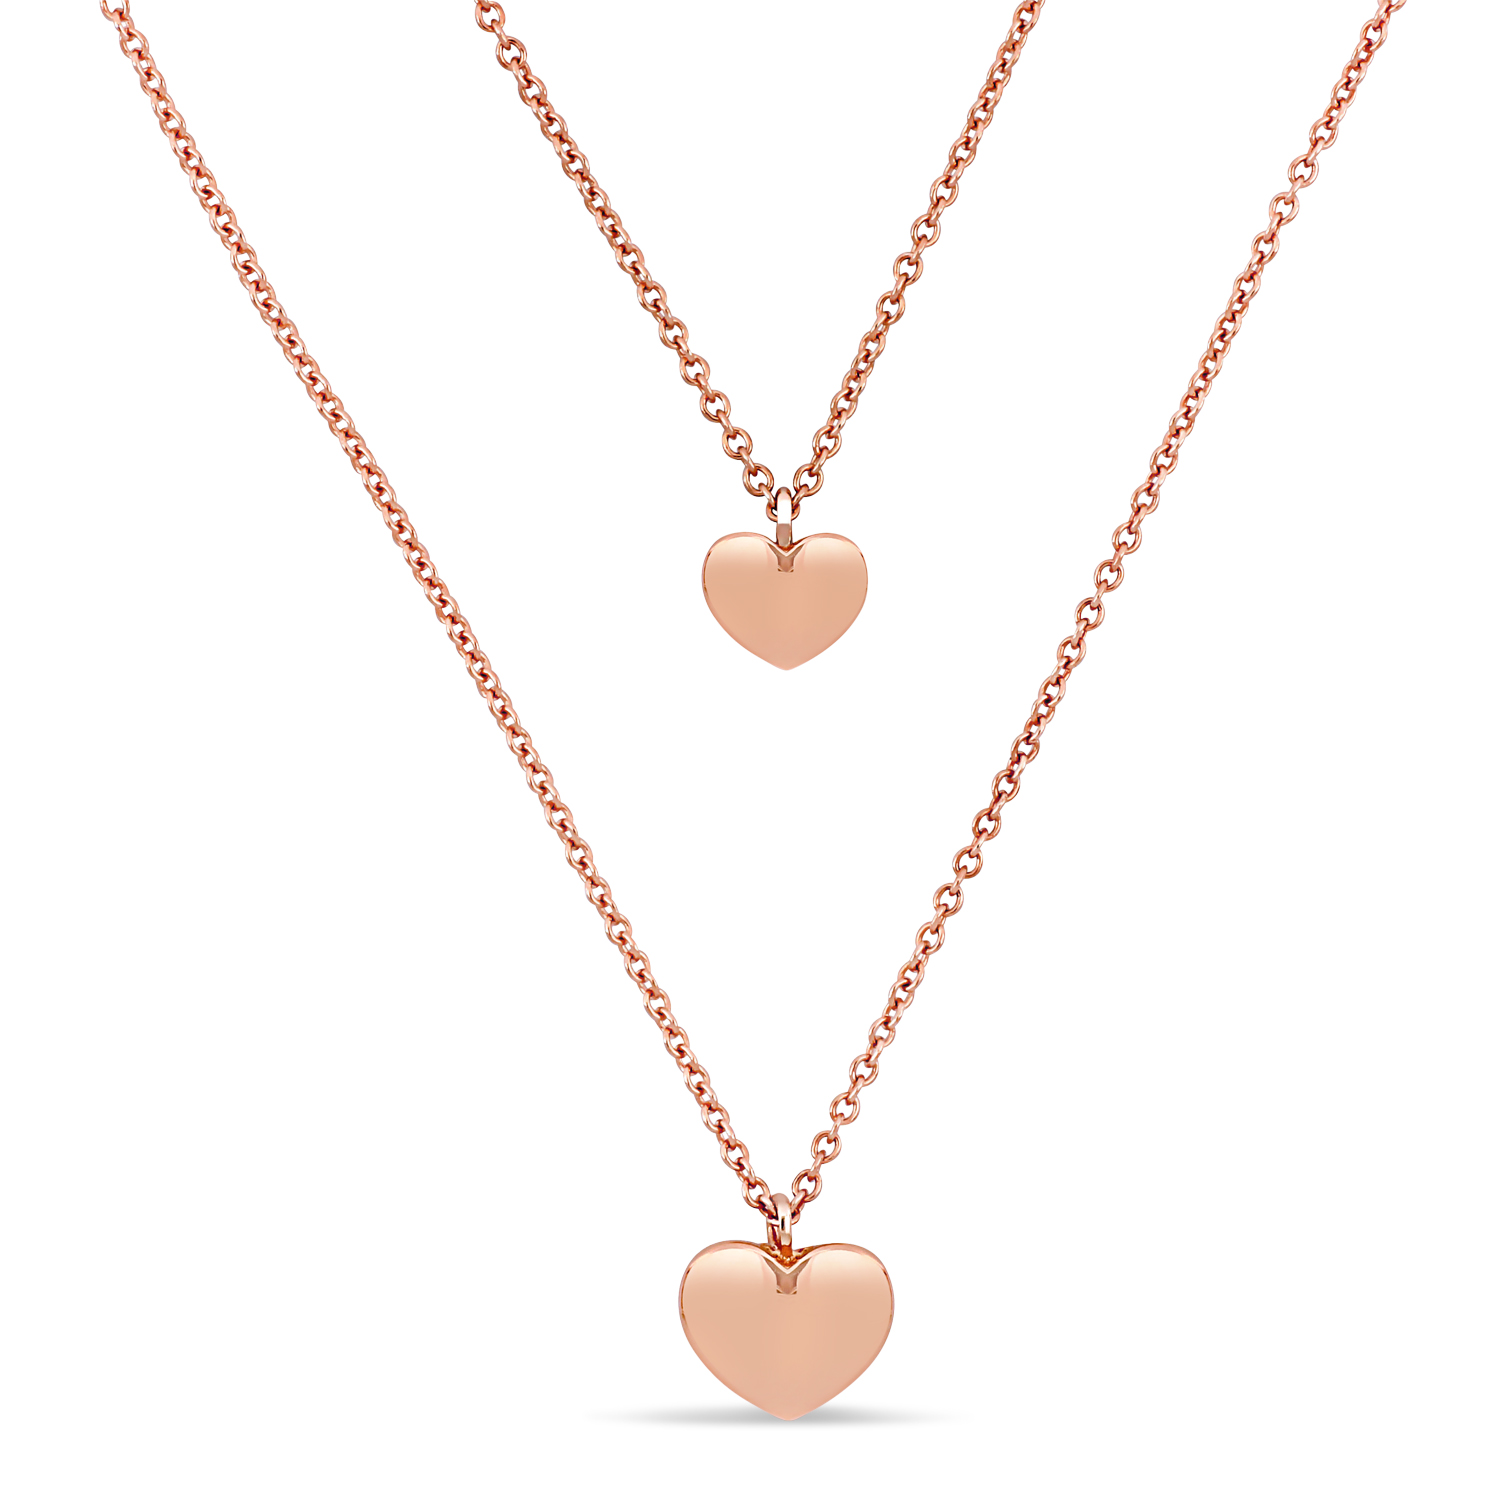 Double Heart Necklace 18k Rose Gold